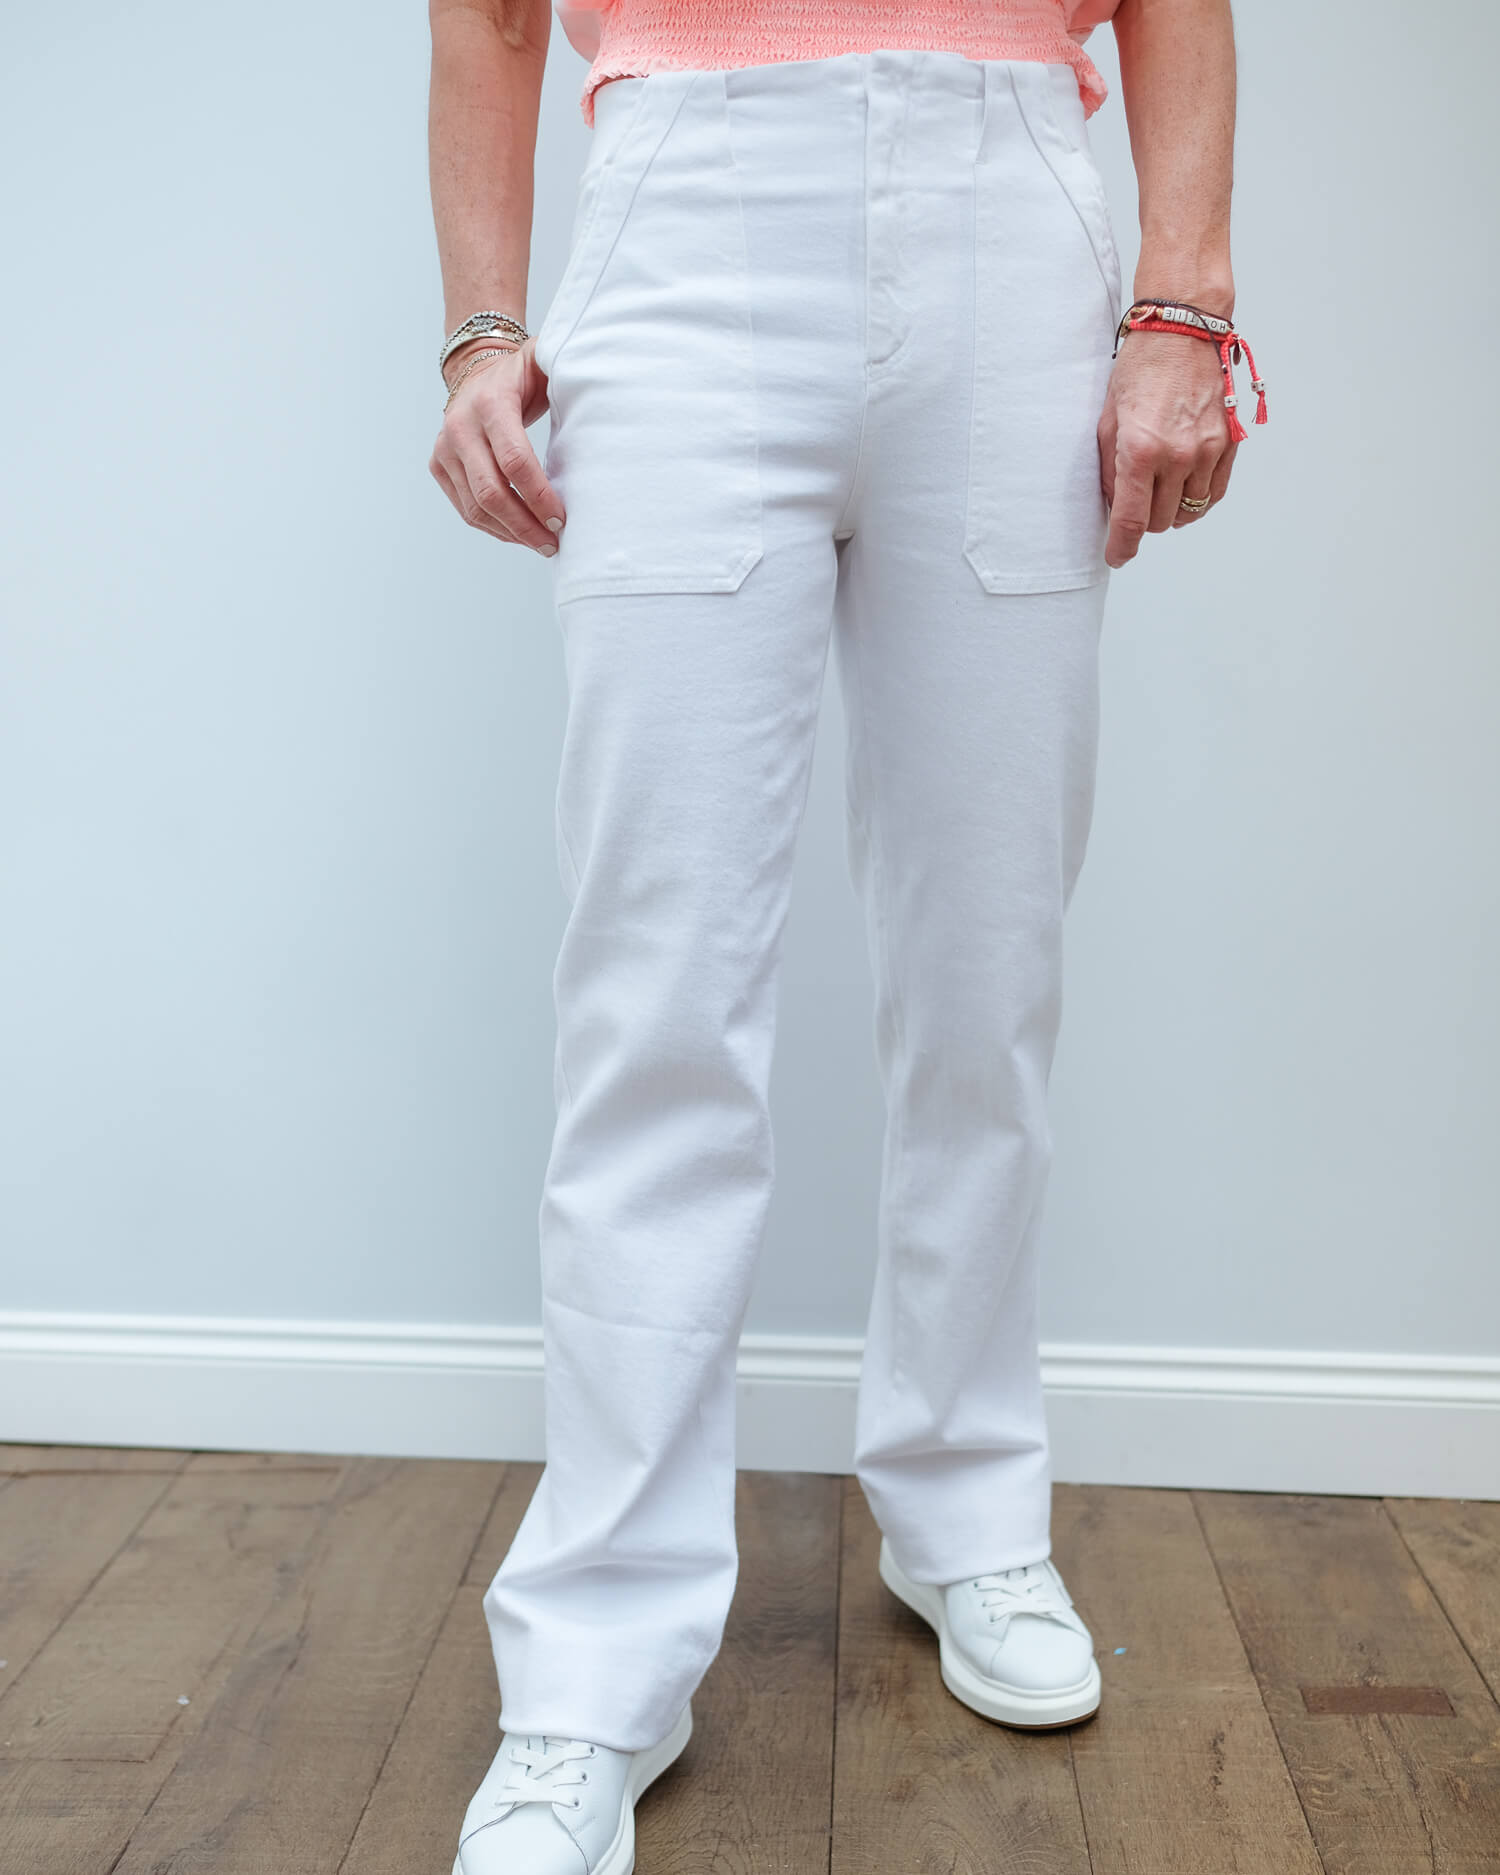 LOR Barria comfort denim in white